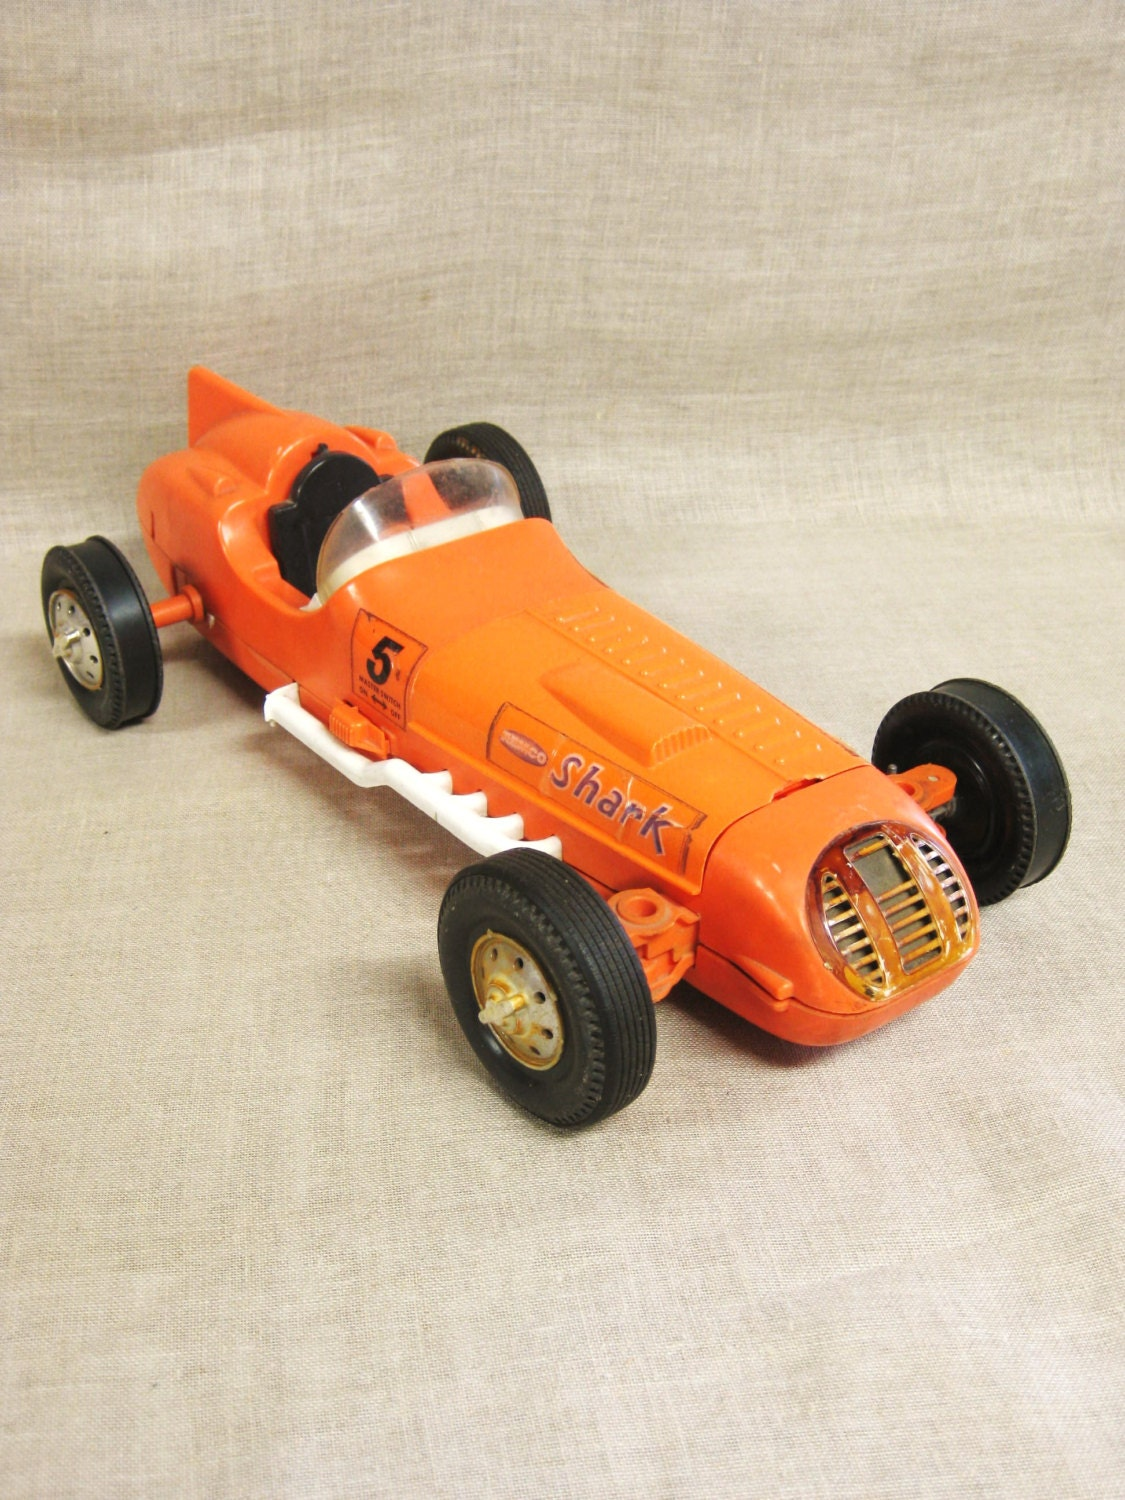 Vintage Remco Shark Toy Car, Transportation, Orange, Race Car, Automobile,  Racecar, Vintage Toys, Vehicle, Hot Rod, Speed Racer, Racer